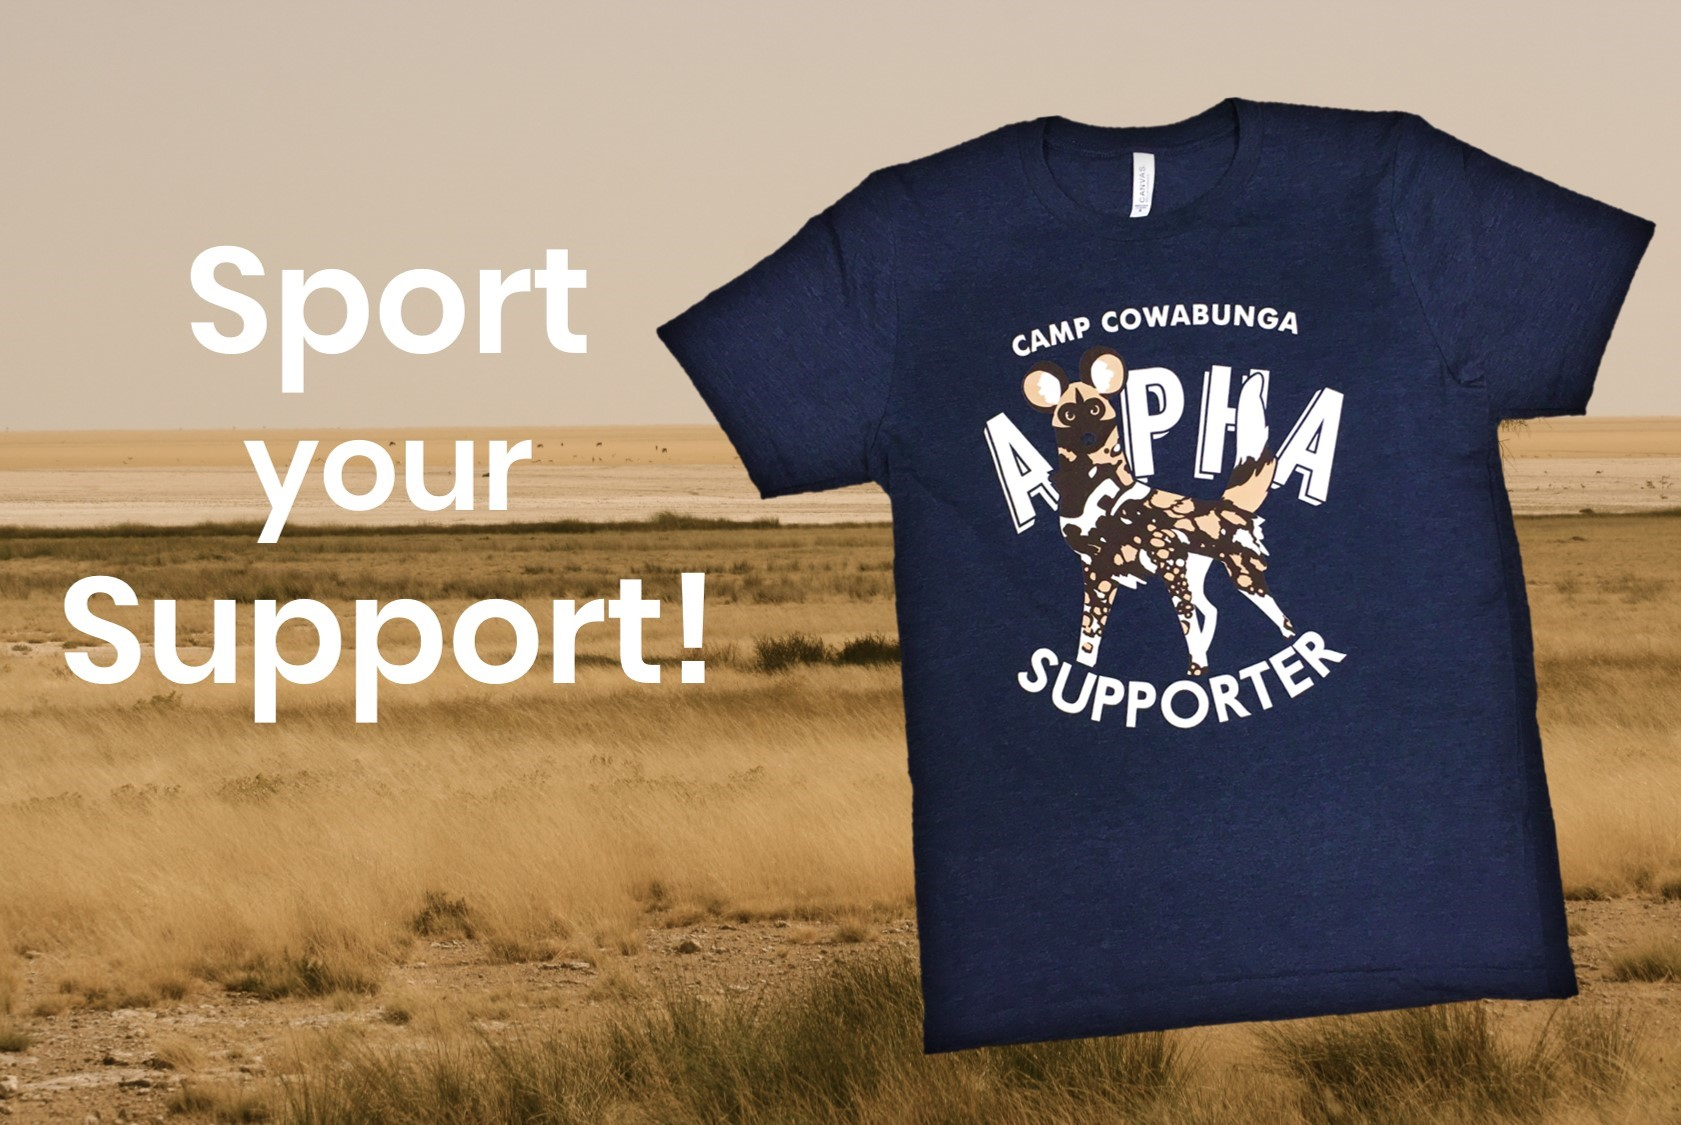 Sport your Support!